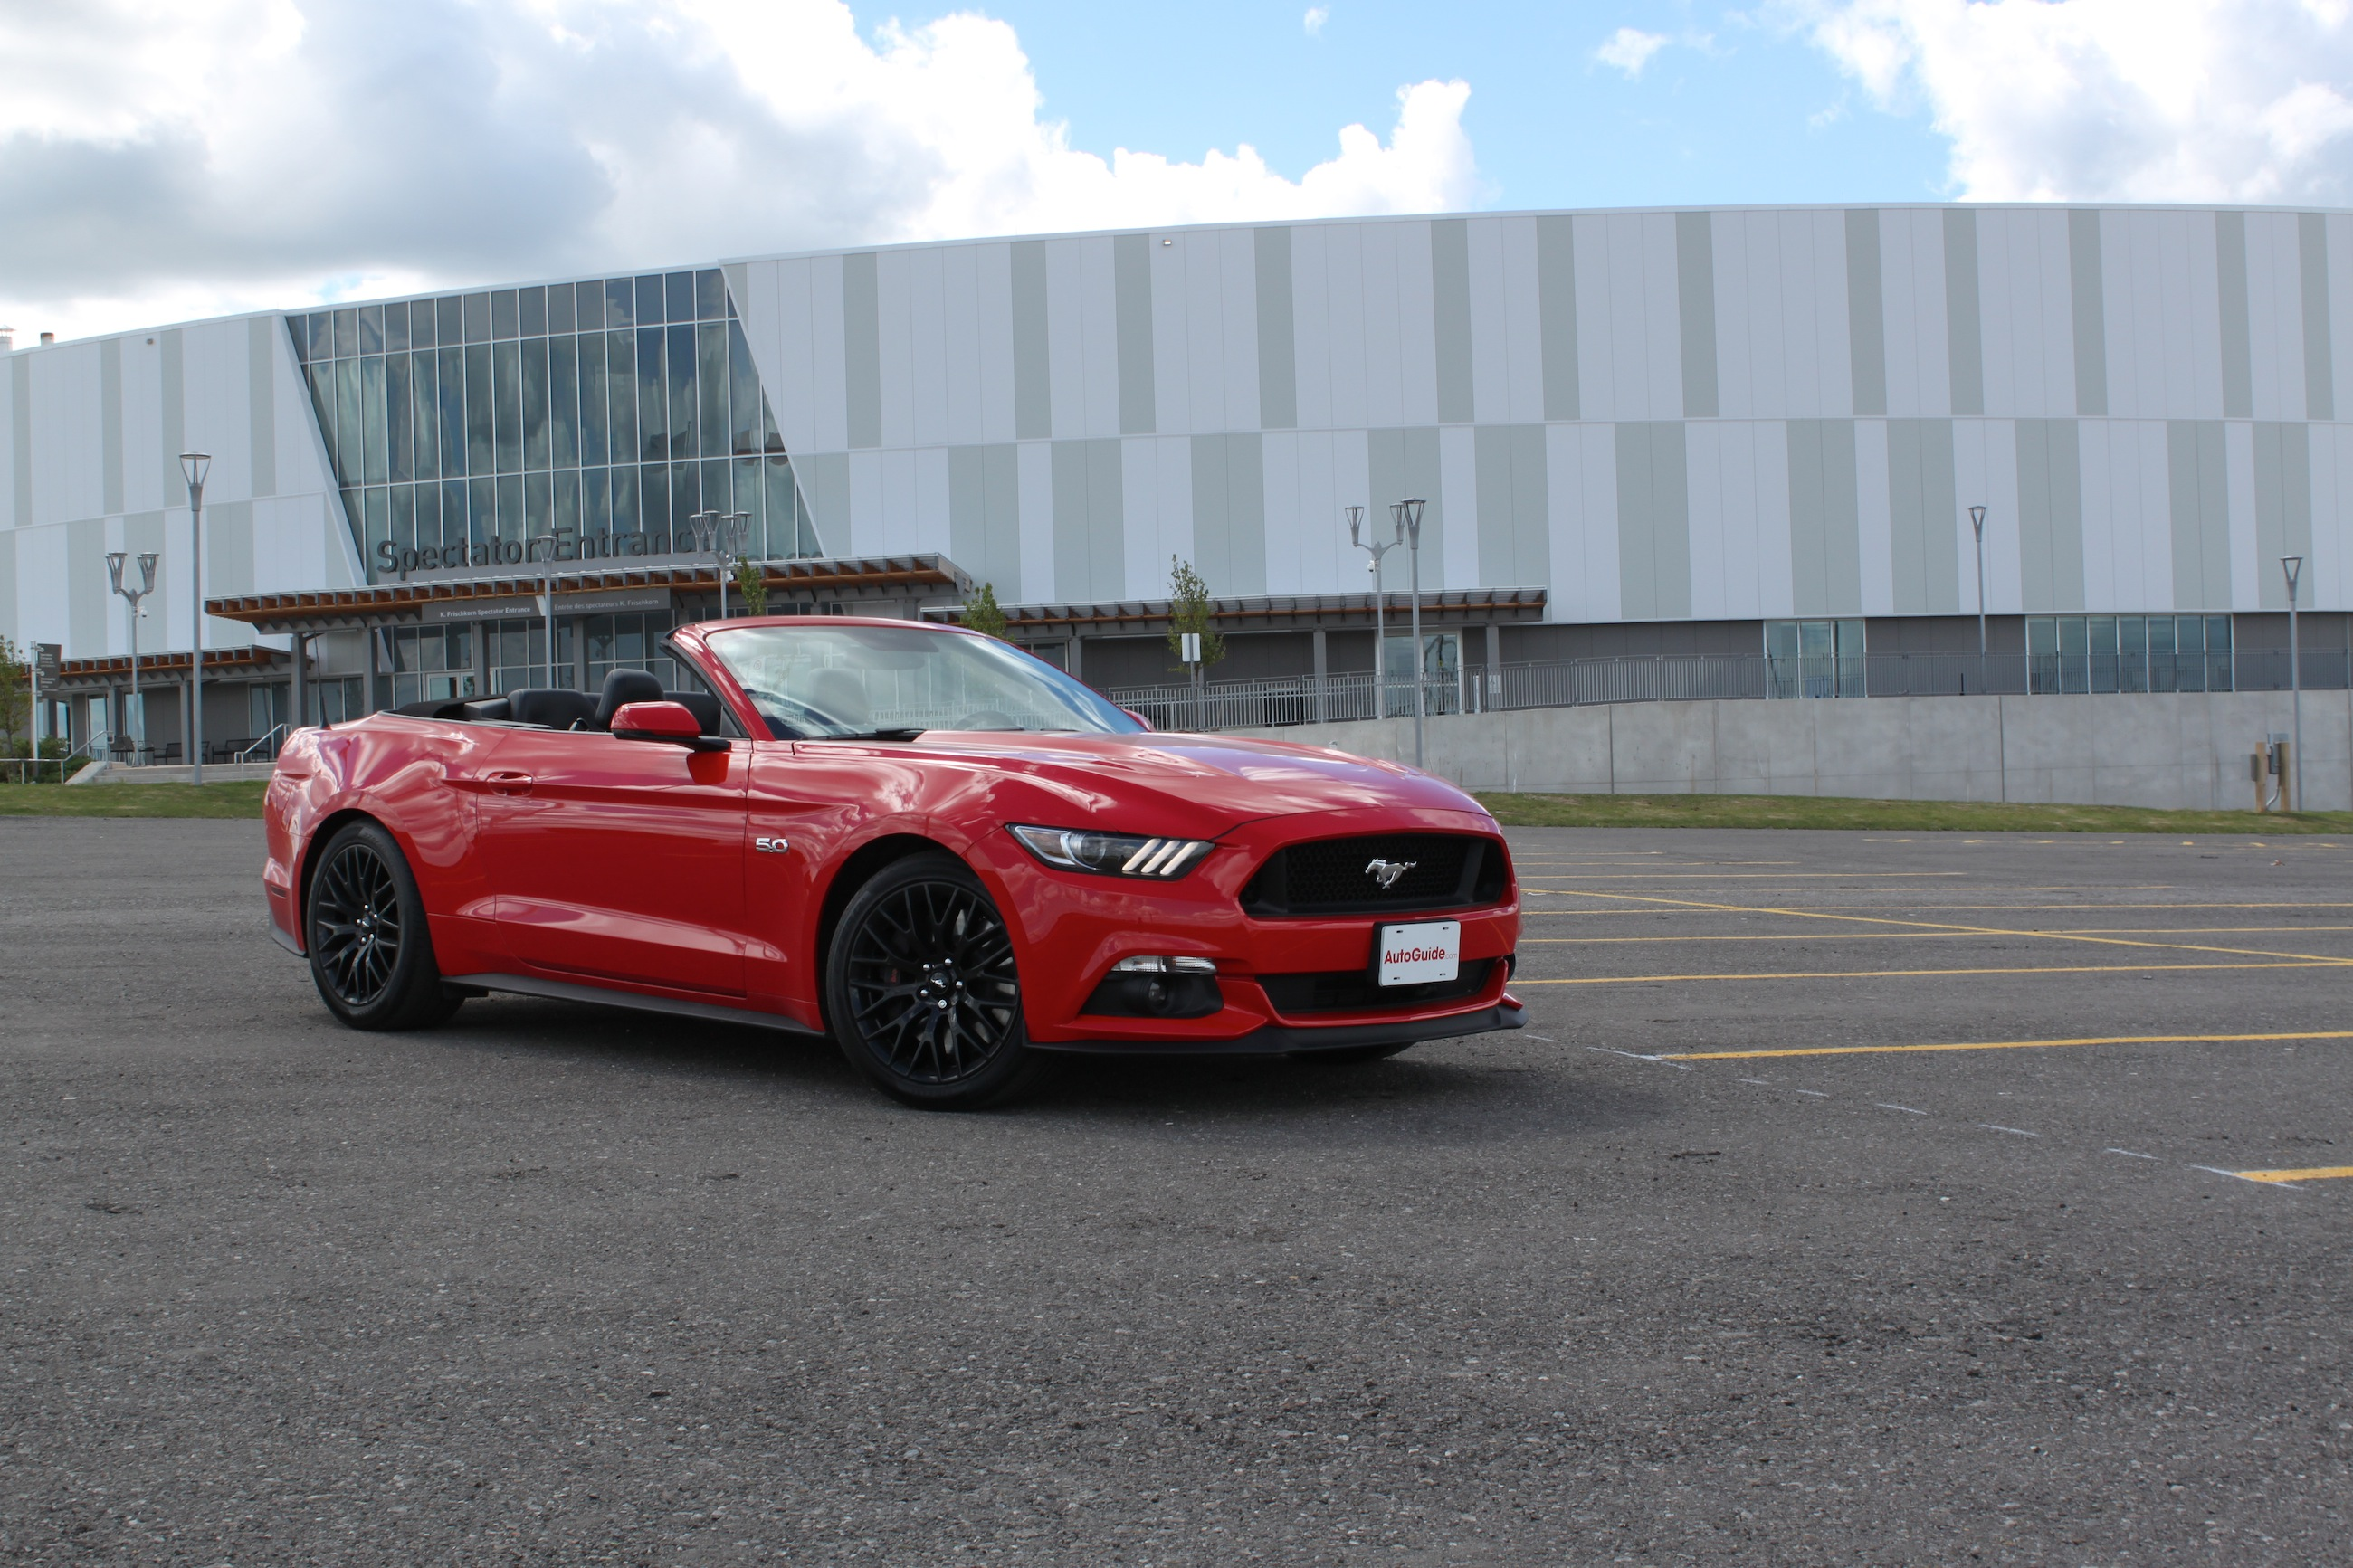 2017 Mustang Gt Convertible Review 1